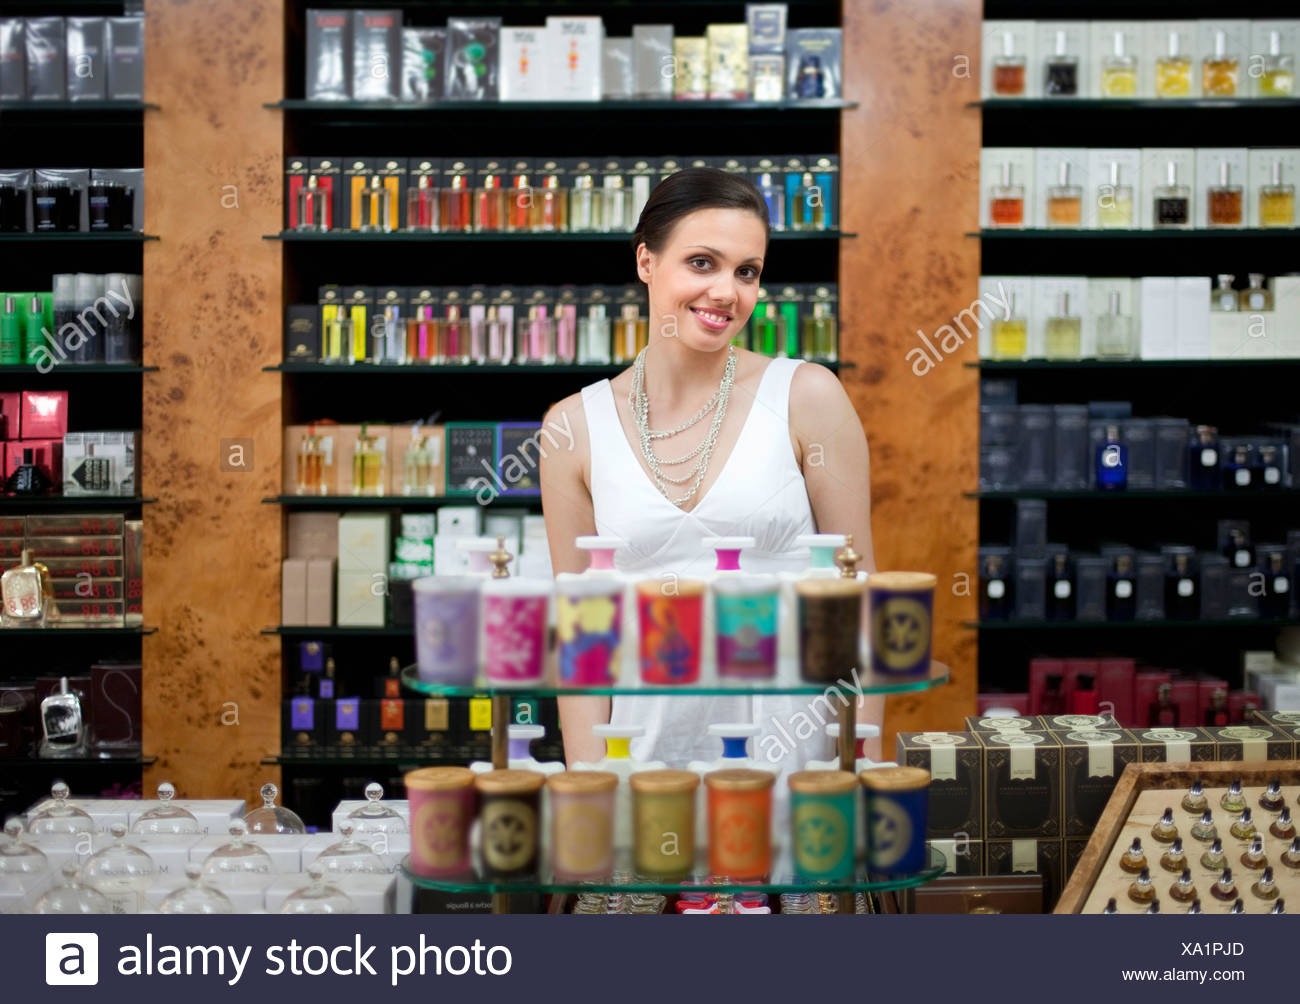 Owner of perfume store - Stock Image